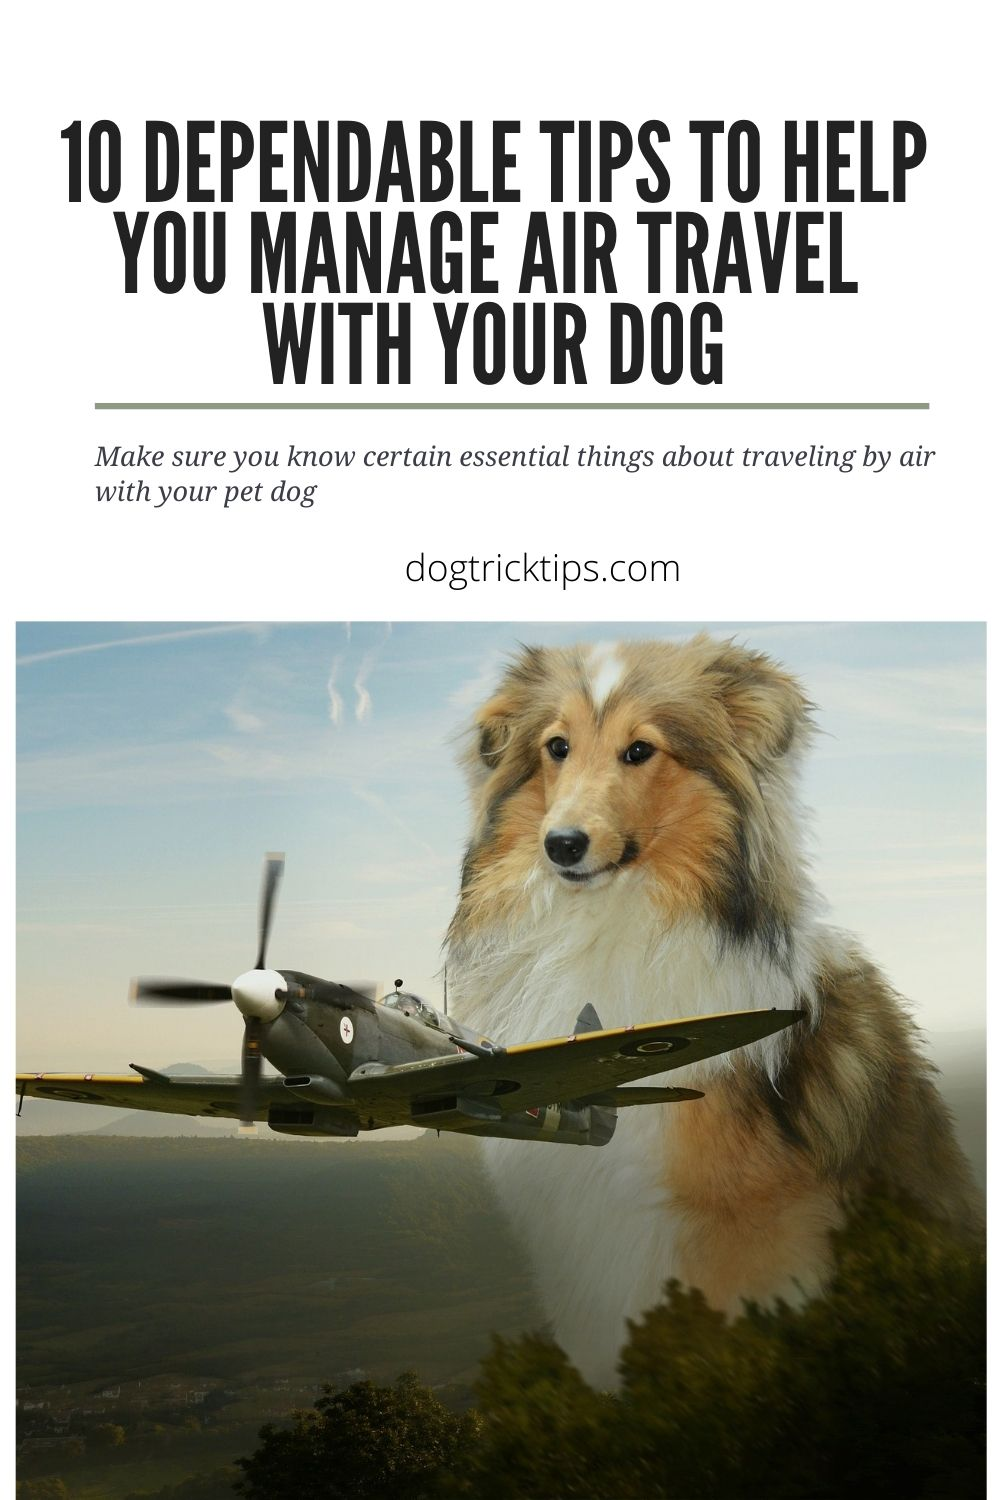 10 Dependable Tips To Help You Manage Air Travel With Your Dog